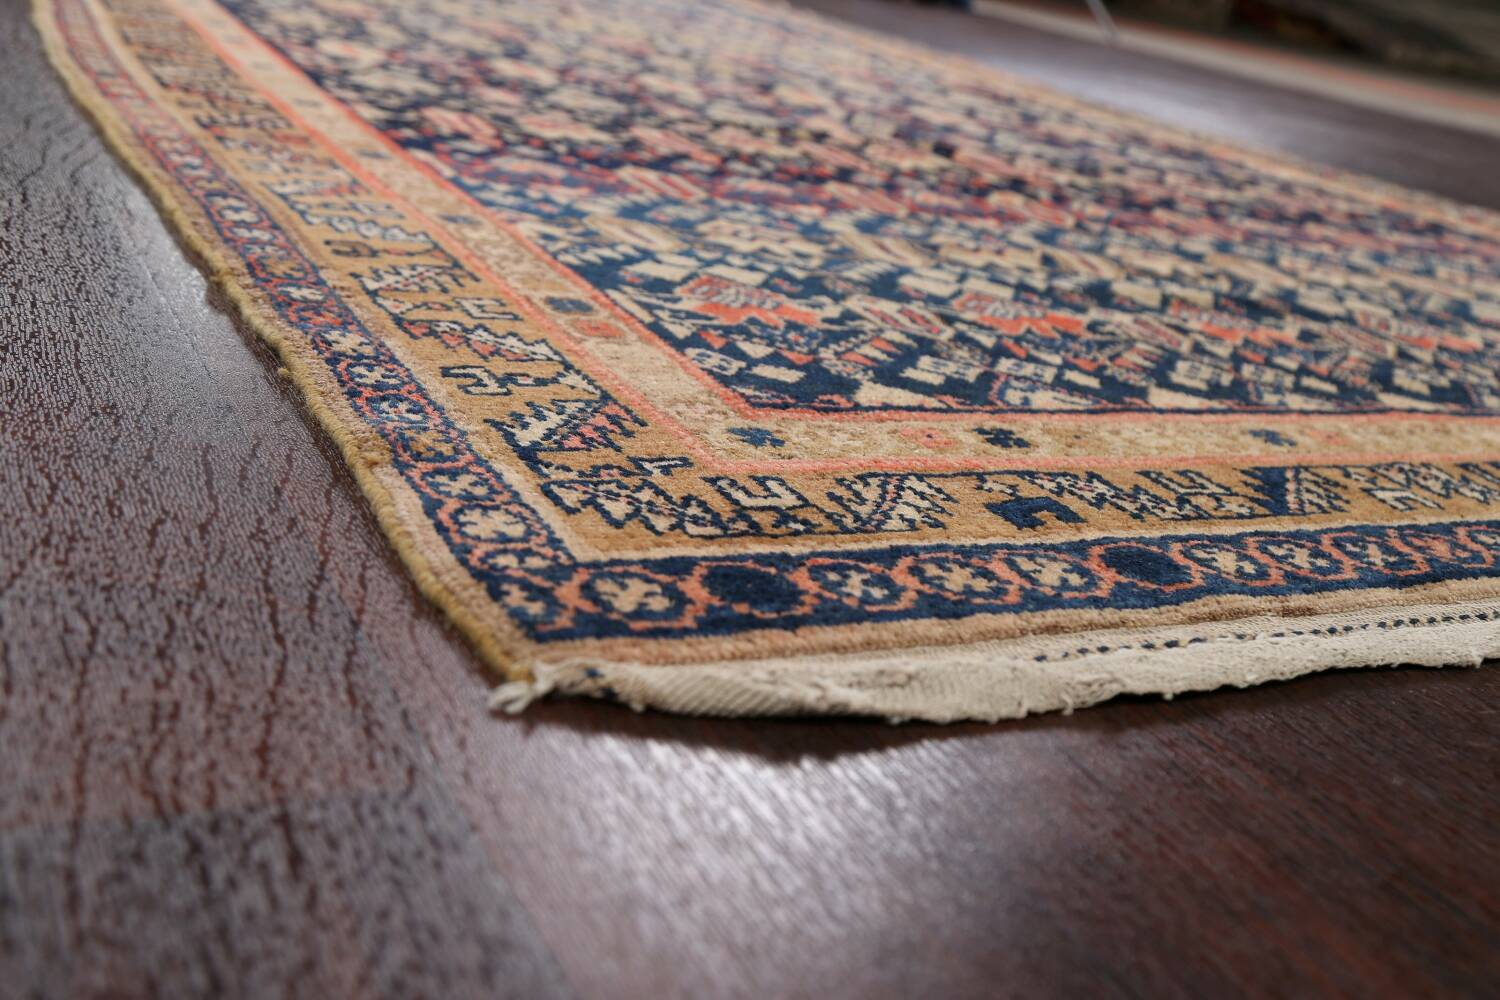 Pre-1900 Antique Vegetable Dye Malayer Persian Area Rug 5x11 image 6